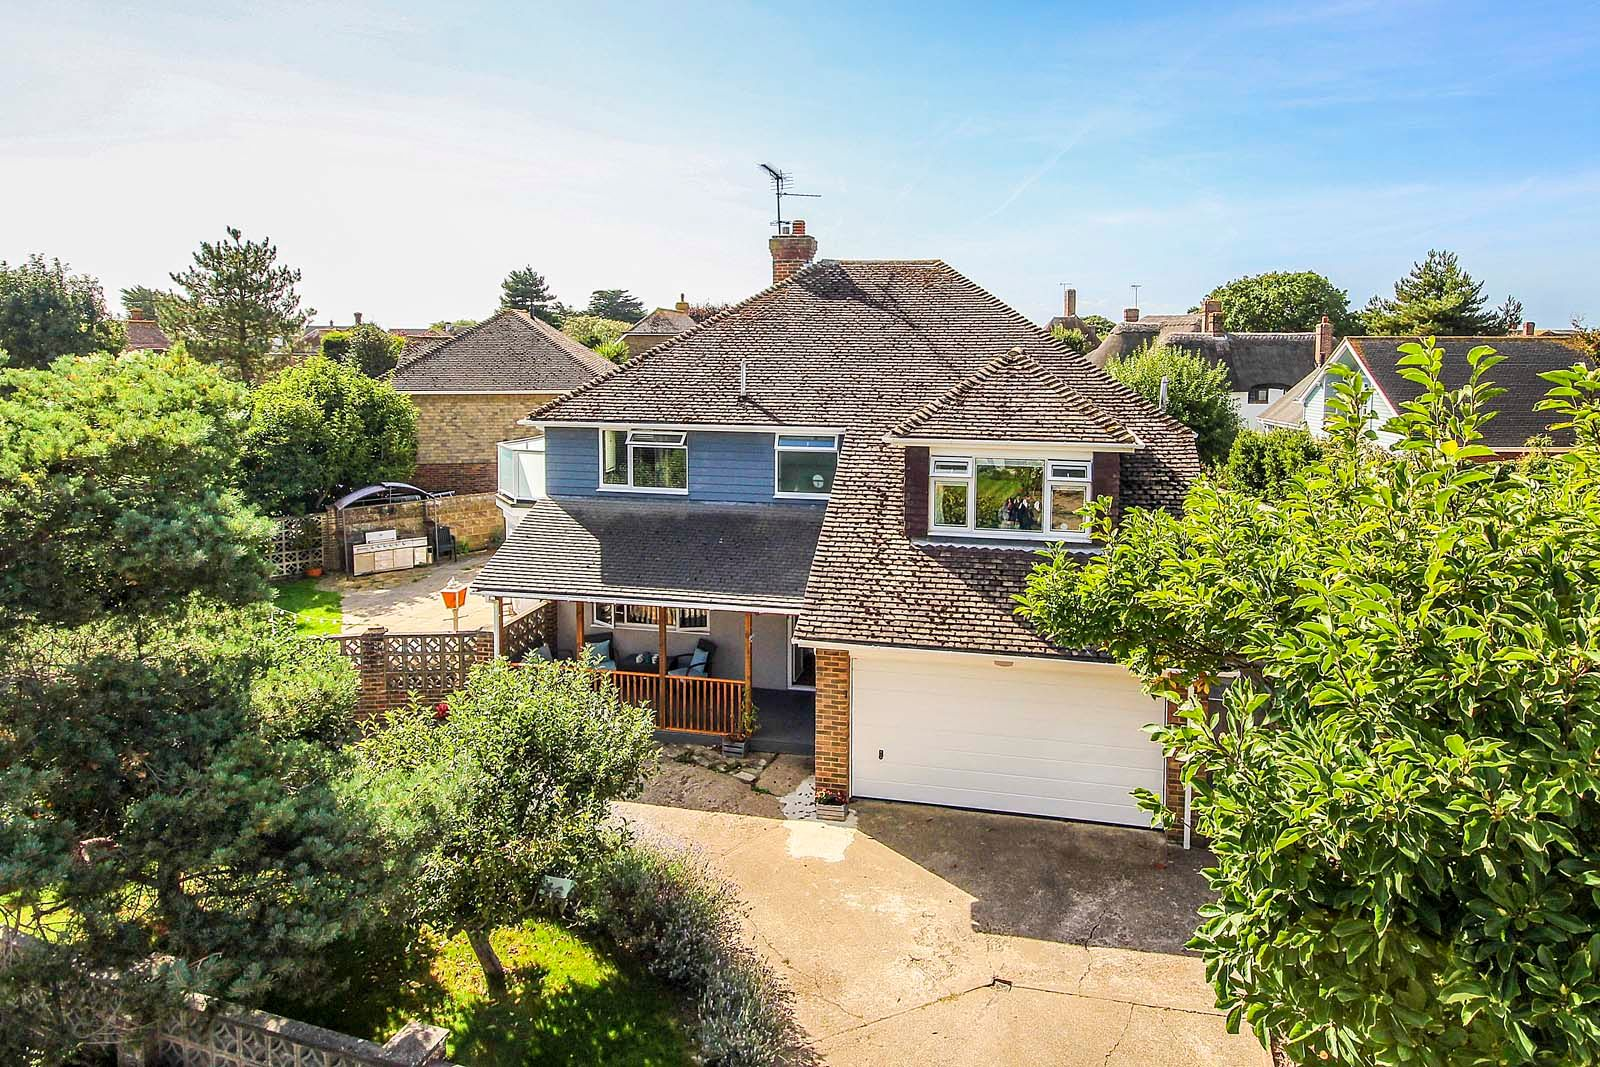 4 bed house for sale in COMPLETED 23/8/19 The Roundway 1